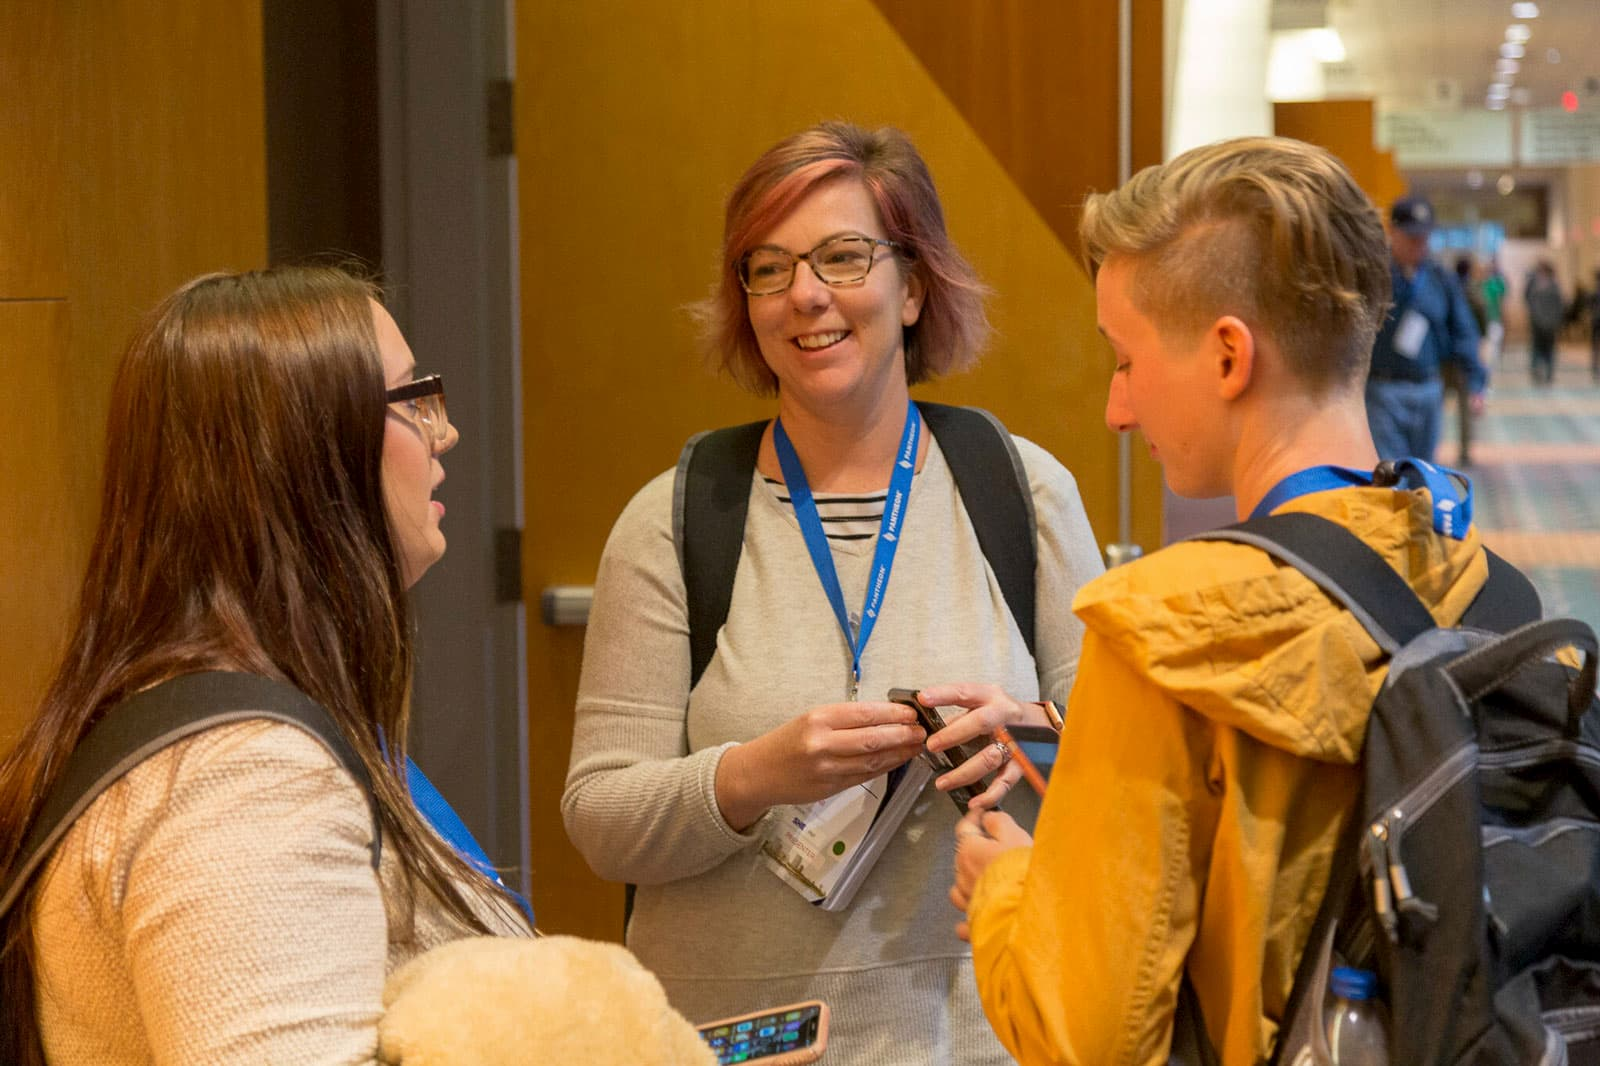 Attendees talk in the hallway during a break in sessions